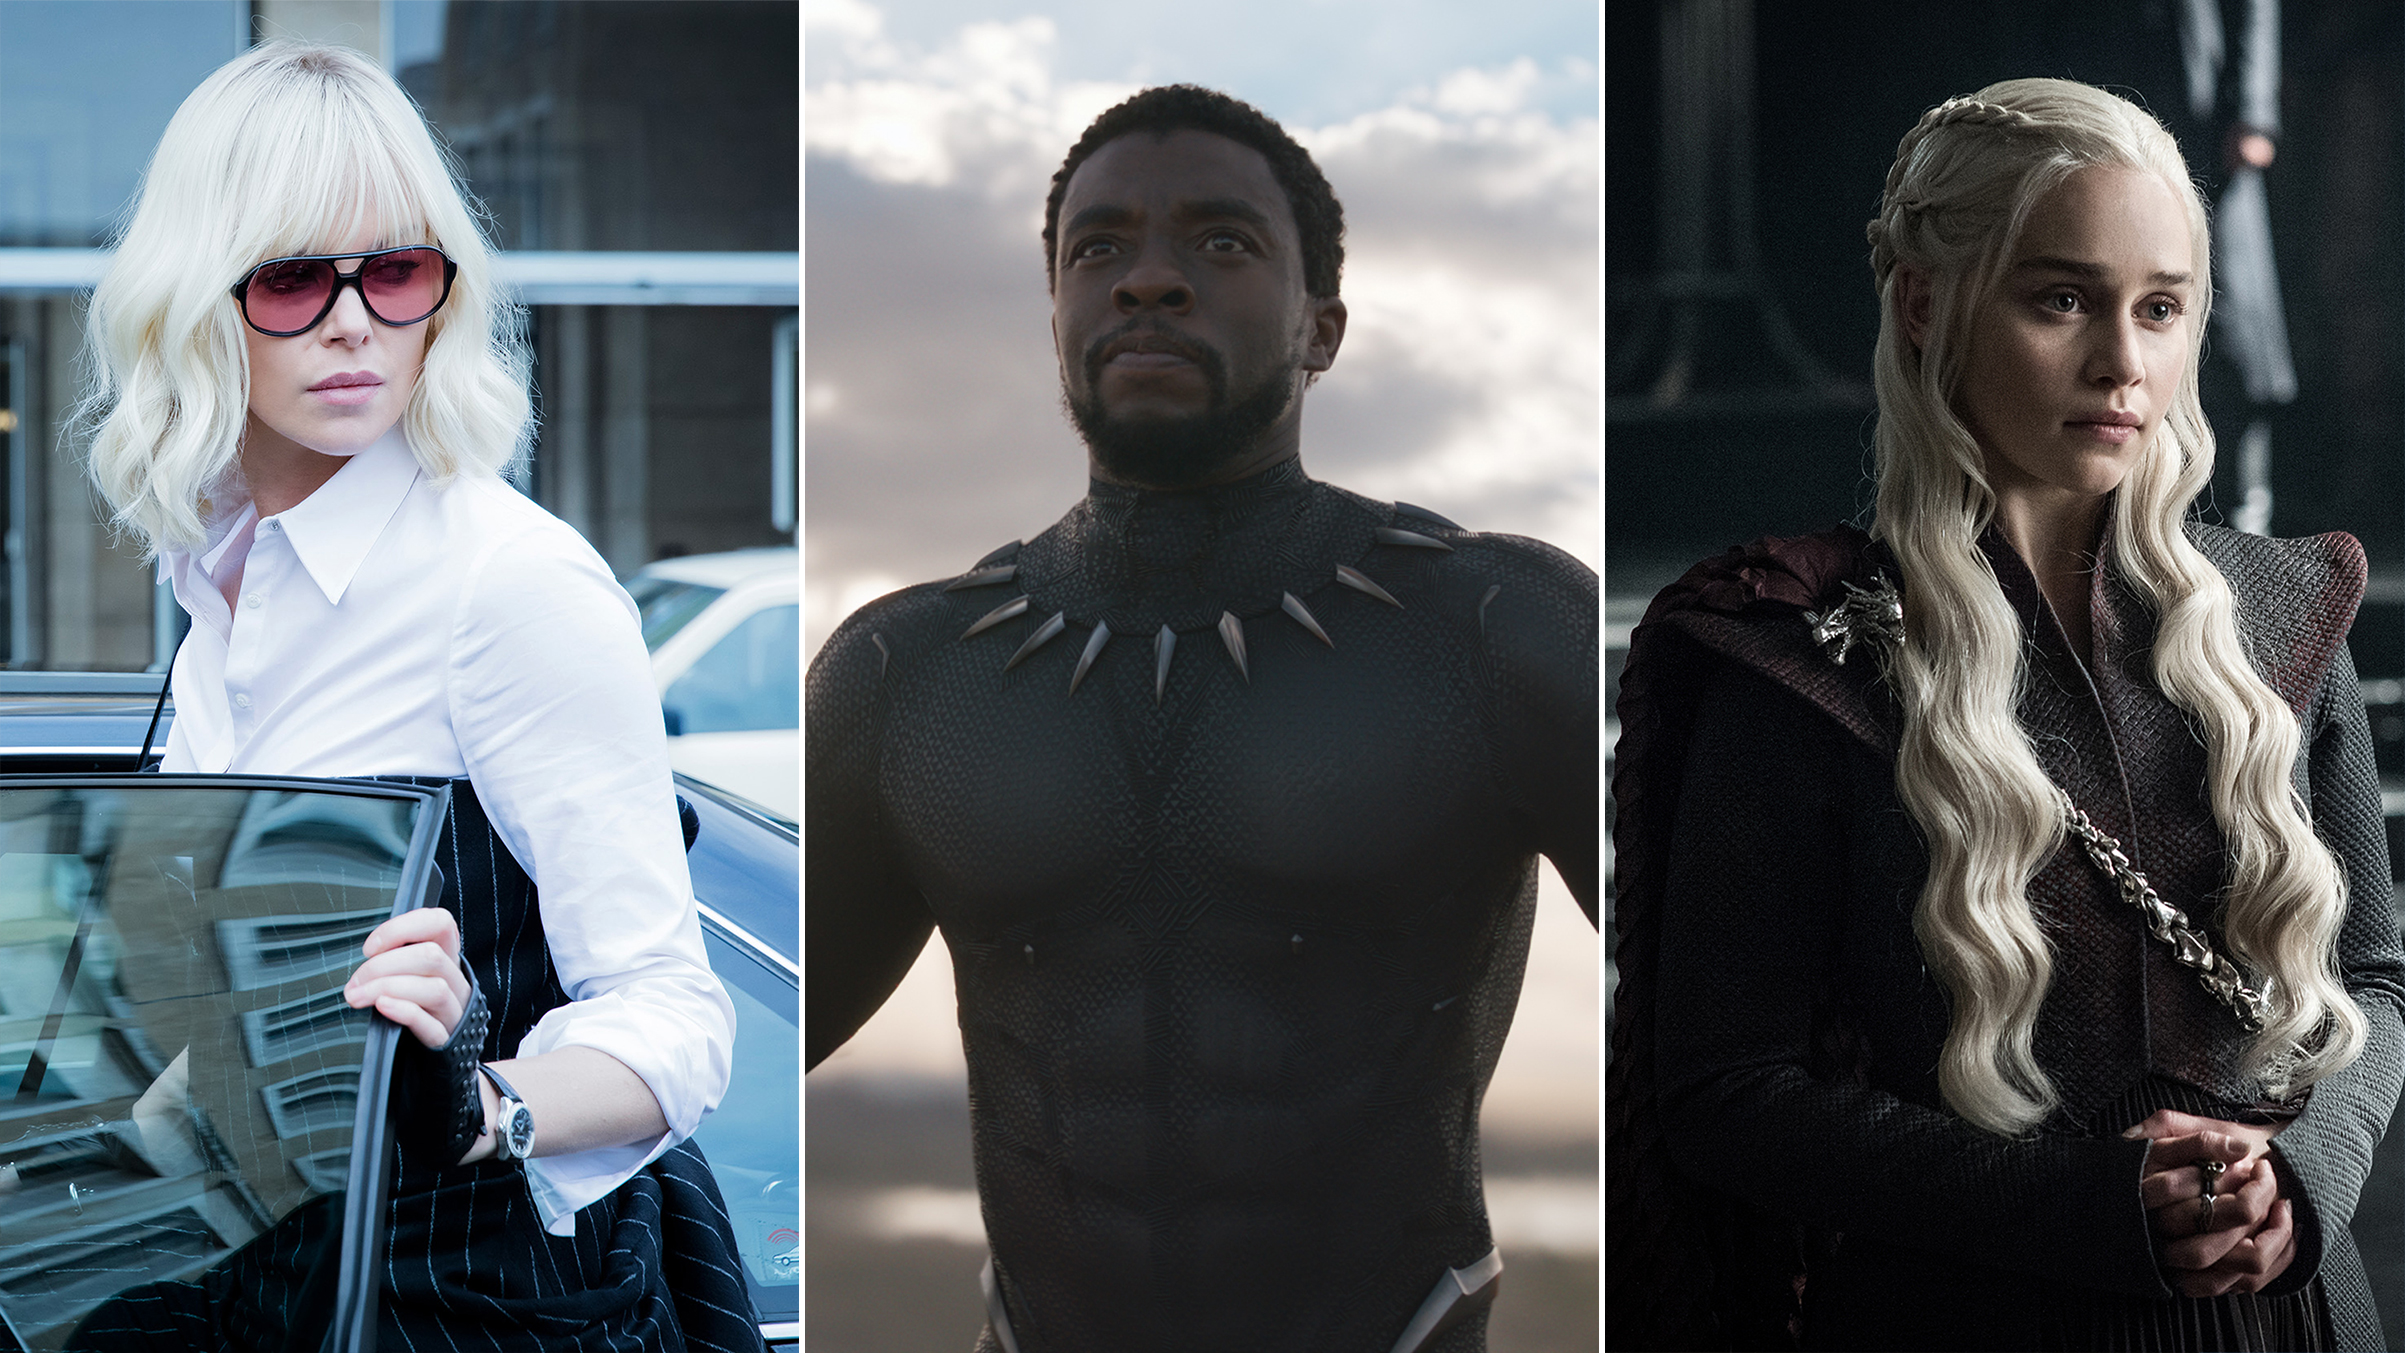 From left: Atomic Blonde, Black Panther, and Game of Thrones.